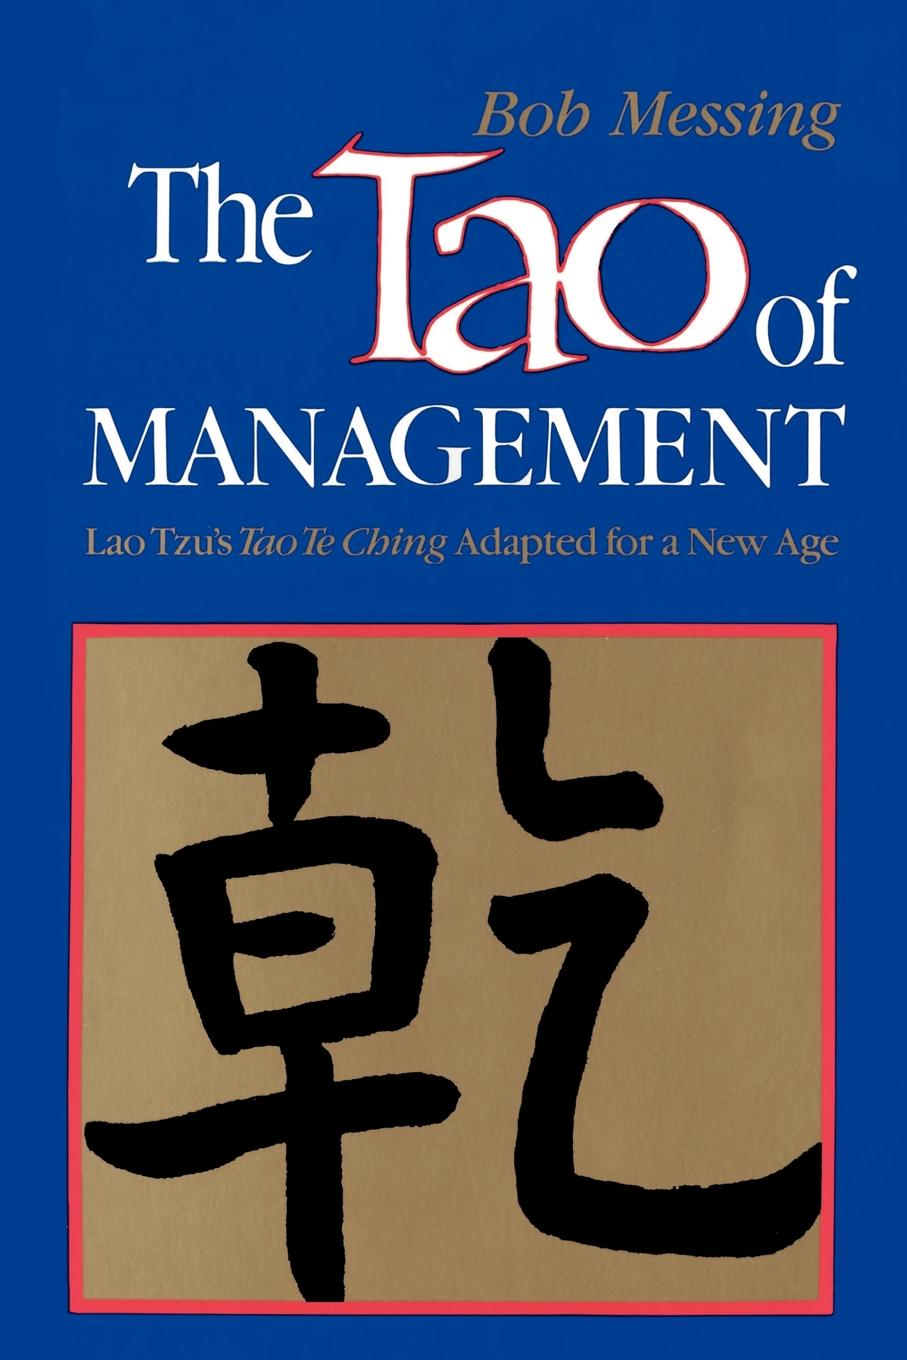 The Tao of Management By: John Heider